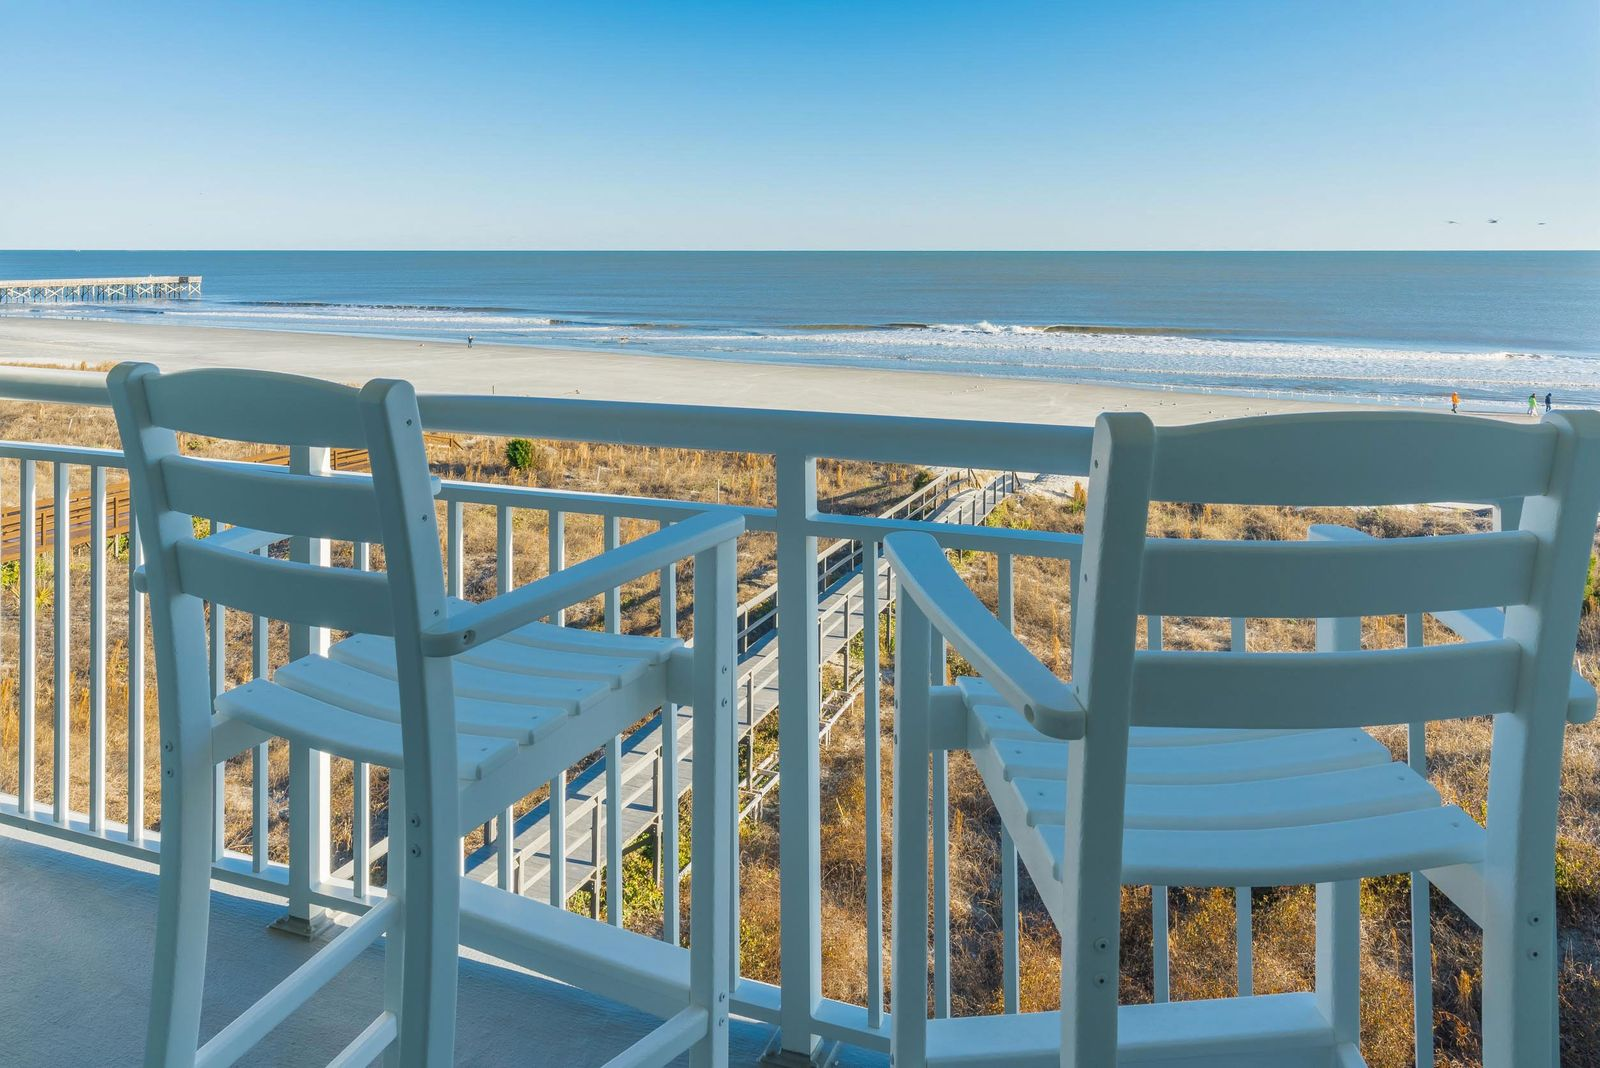 It's all about the beach at this renovated spot on the Isle of Palms.